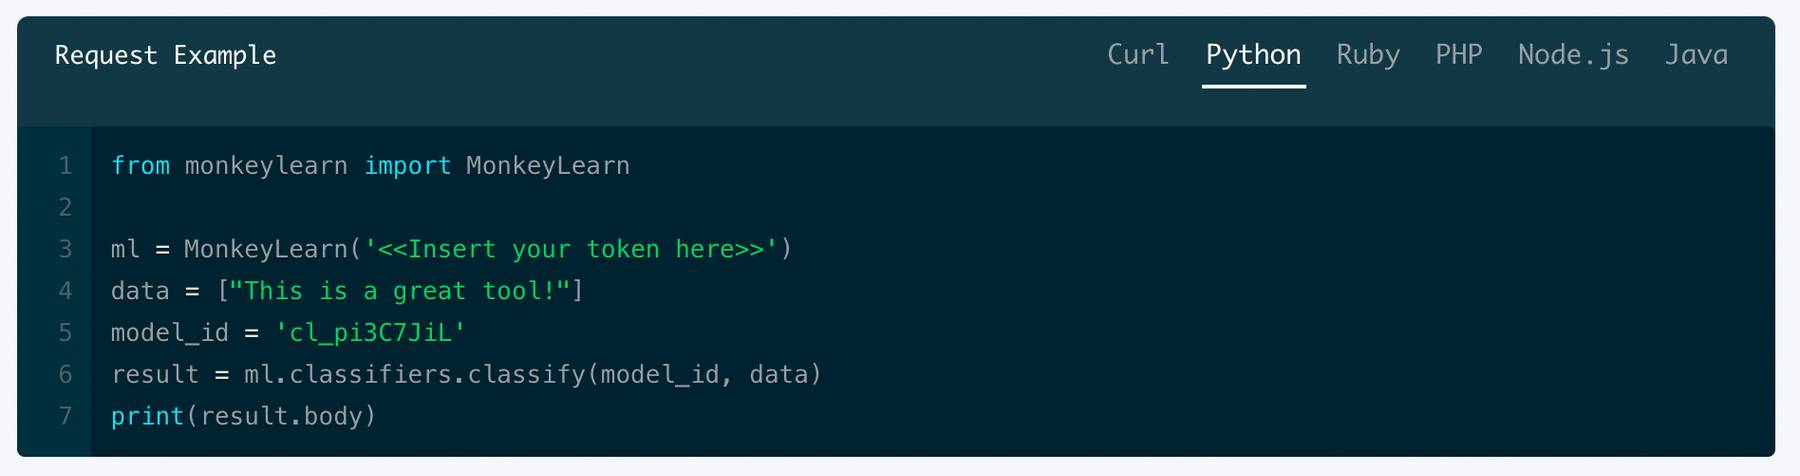 Using the API for processing data with the classifier